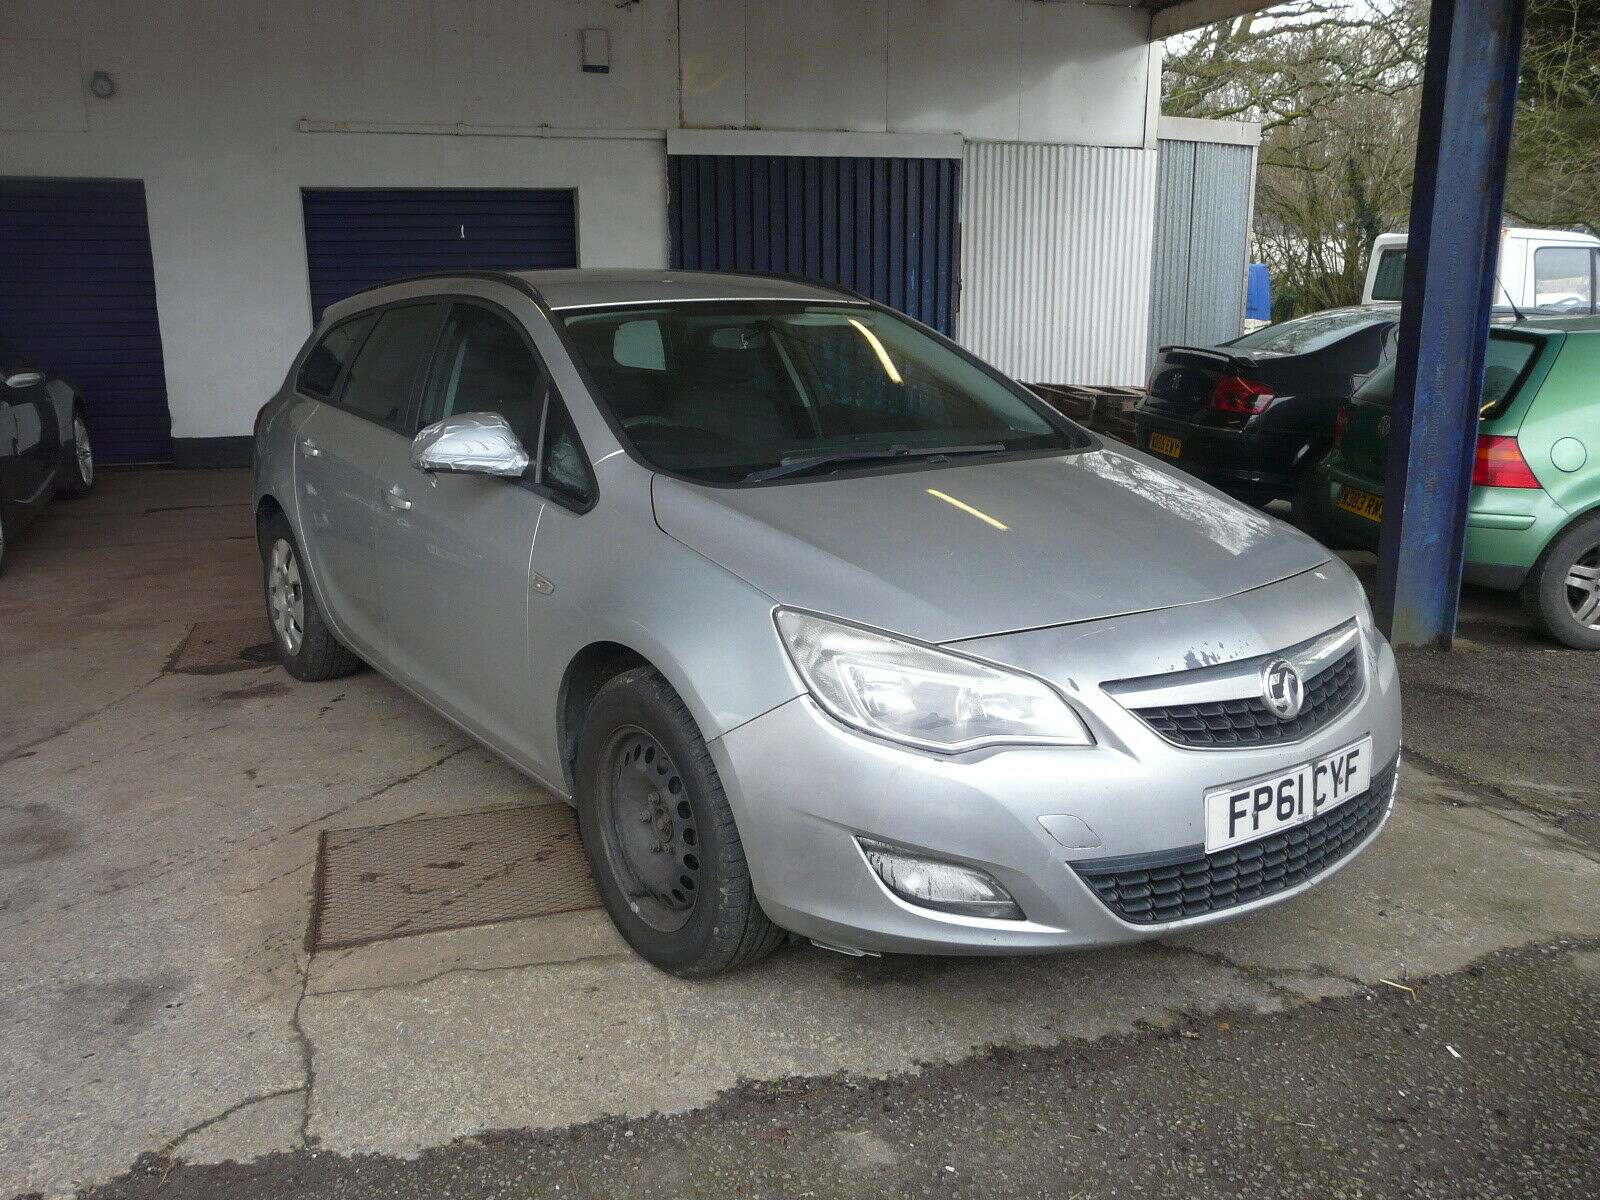 2011-61-VAUXHALL-ASTRA-EXCLUSIV-CDTI-ESTATE-NO-RESERVE